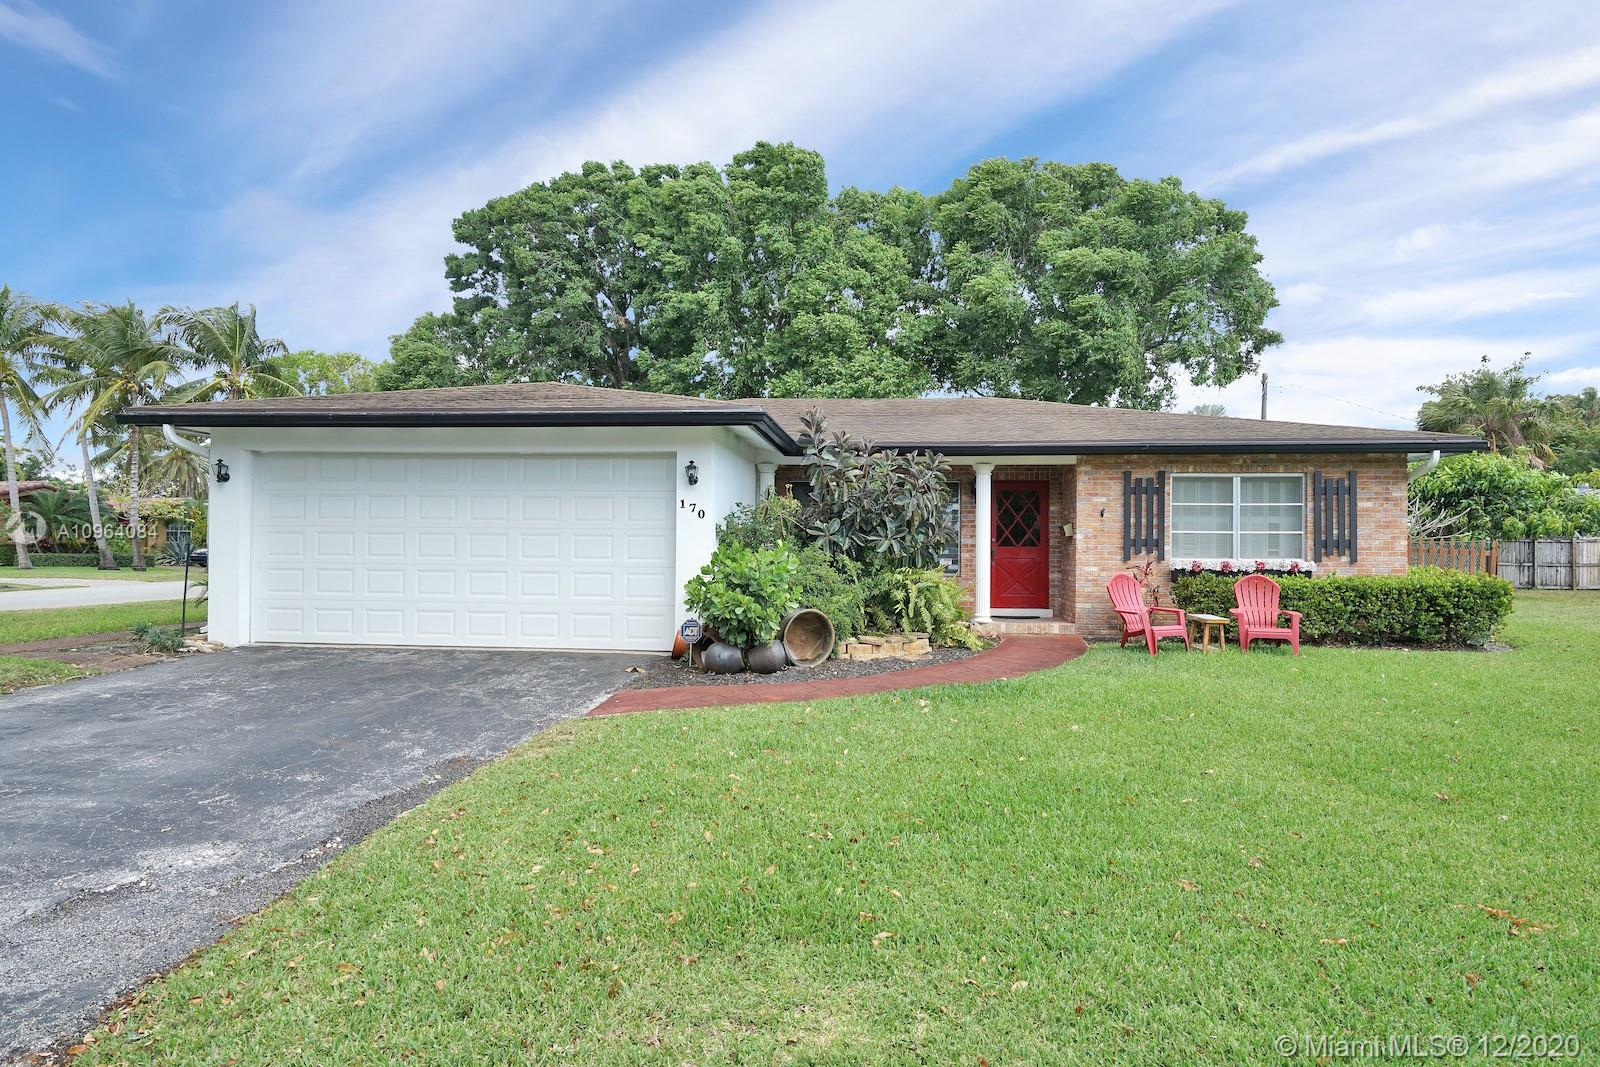 BEAUTIFUL 4 bedroom 2 bathroom home located on a private cul-de-sac in the desirable community of Sleepy River Acres! Large driveway and 2 car garage! As soon as you enter you are greeted by natural light and an open floor plan! This home features a split bedroom layout. Tile flooring throughout. The kitchen has been remodeled with wood cabinets, granite countertops, upgraded backsplash and stainless steel appliances. Enjoy tranquil water views from your front yard! Excellent location near major highways, beaches, restaurants, shopping and more!